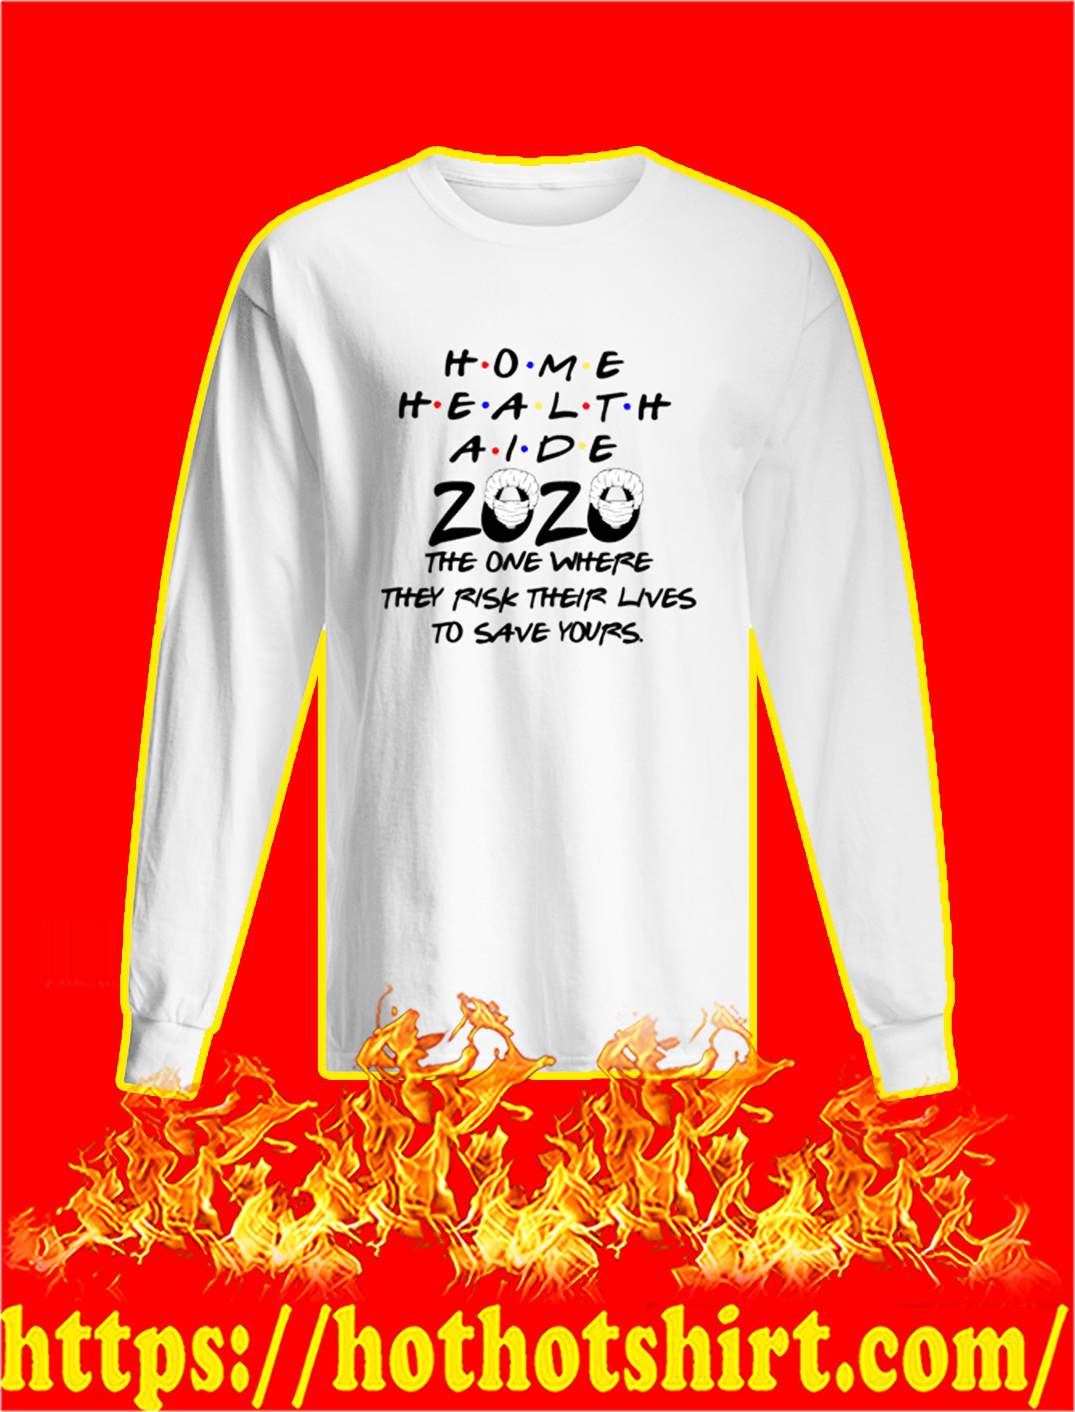 Home health aide 2020 the one were they rick their lives to save yours longsleeve tee